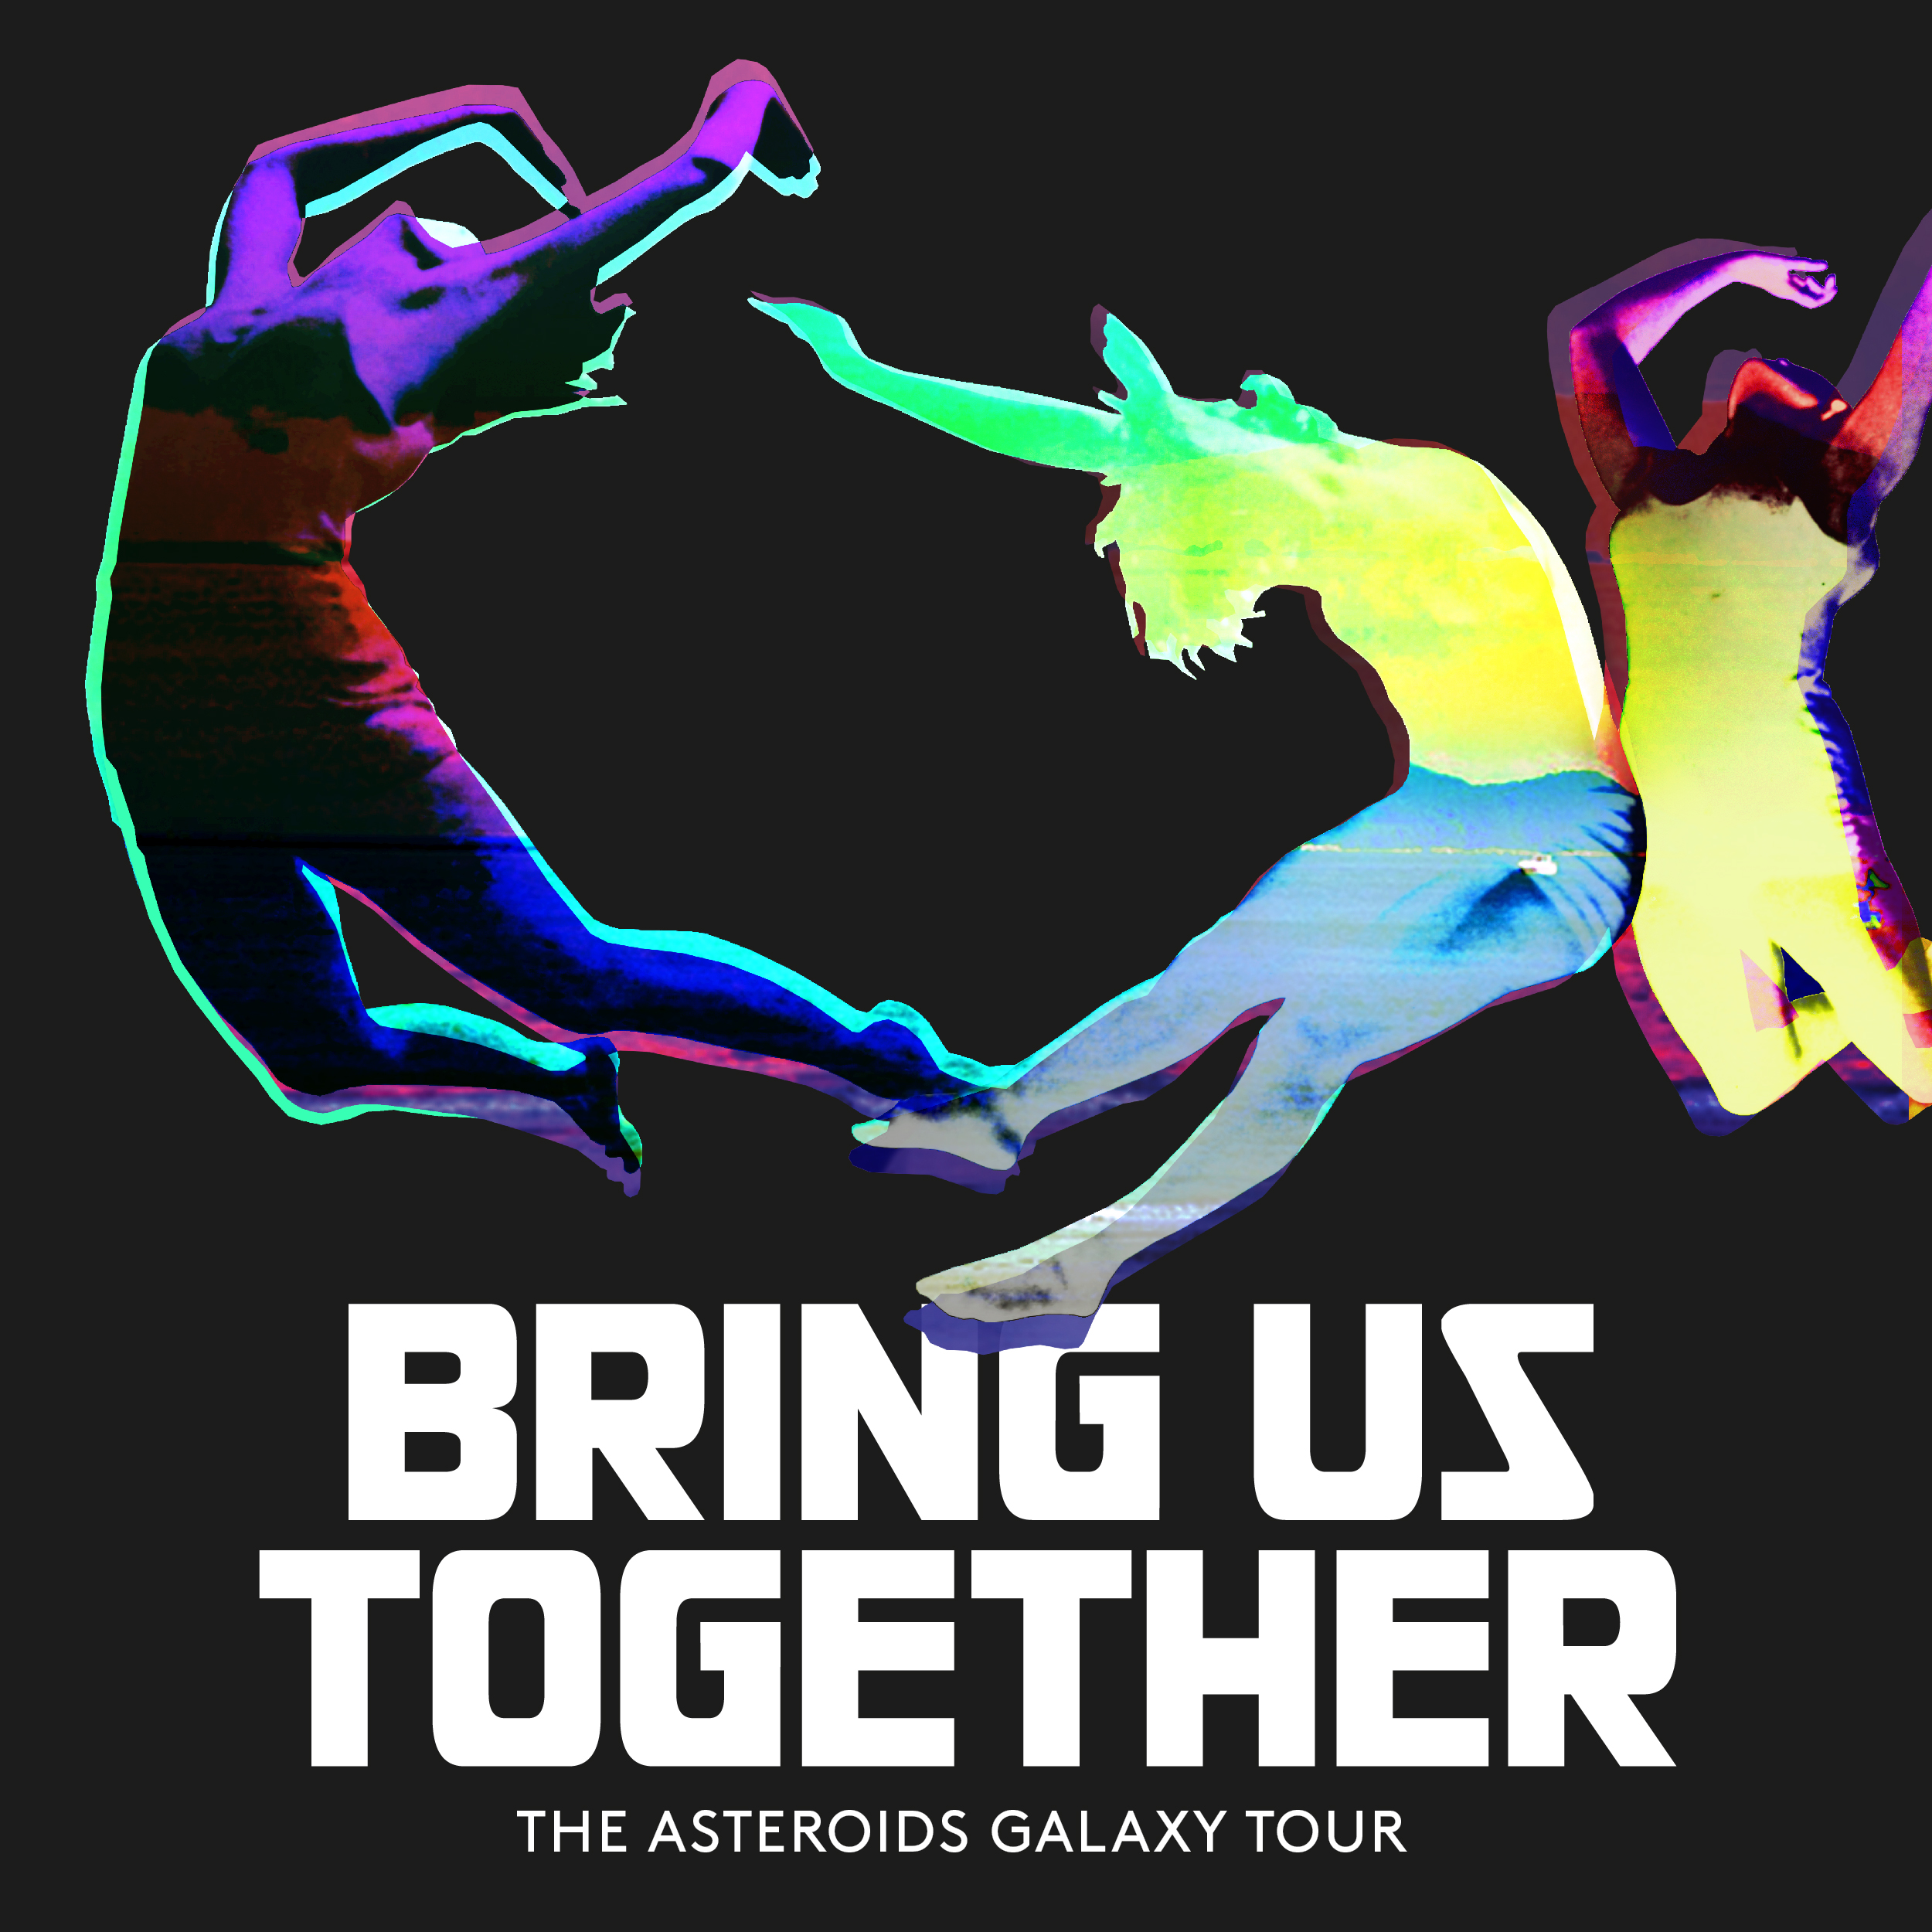 About | Bring Us Together